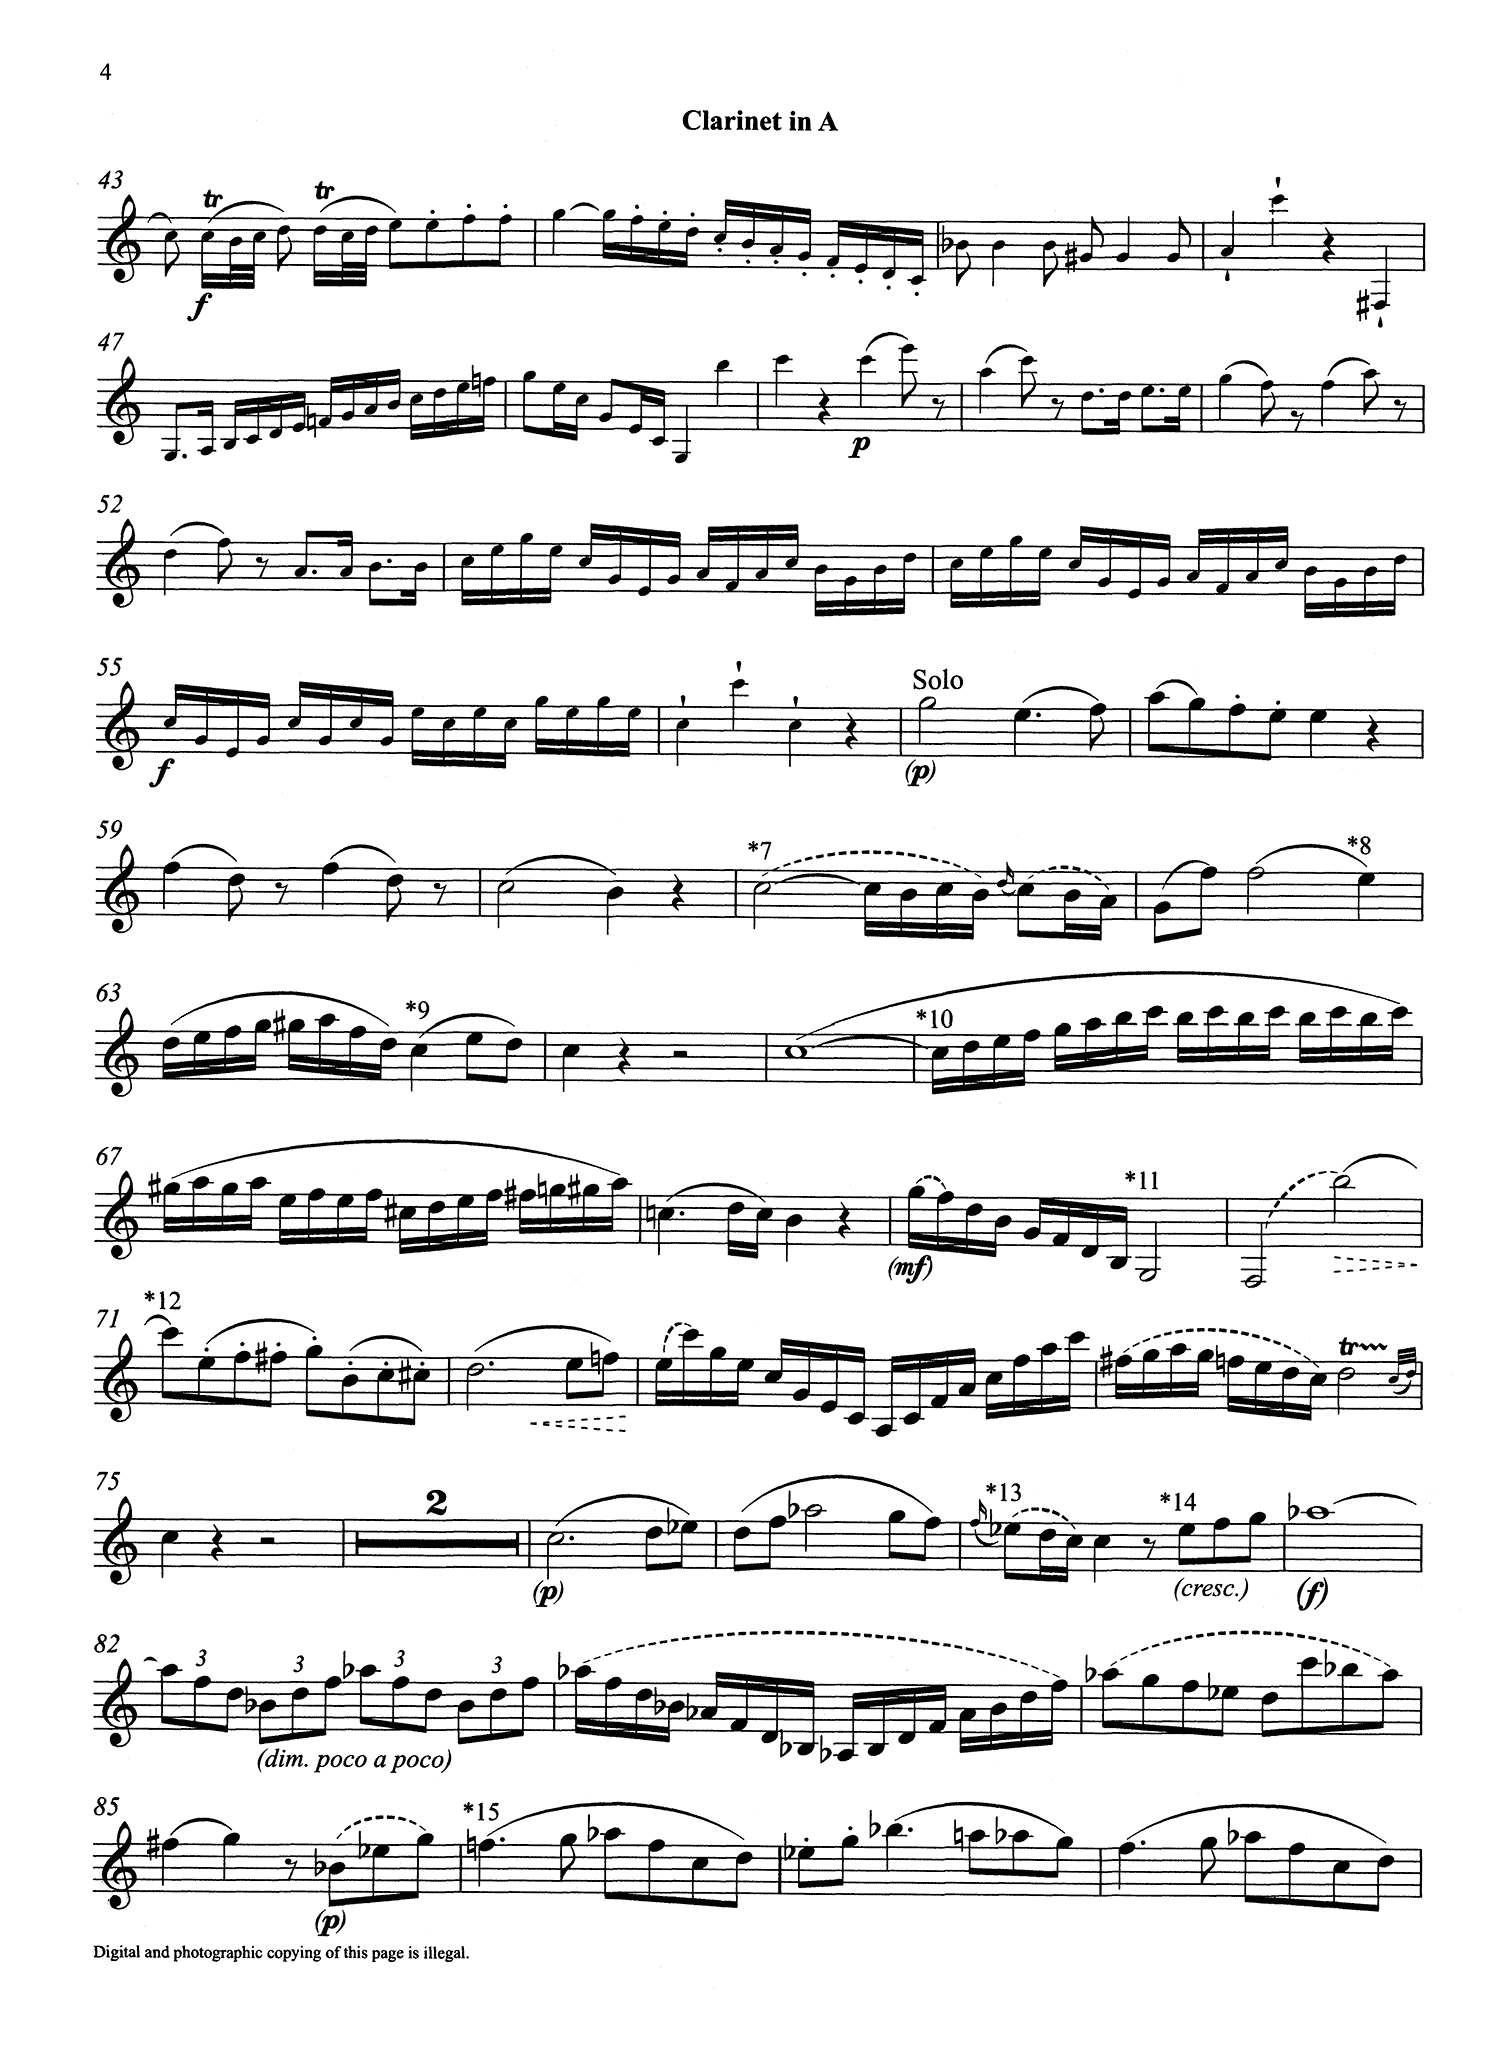 Clarinet Concerto in A Major, K. 622 A Clarinet part